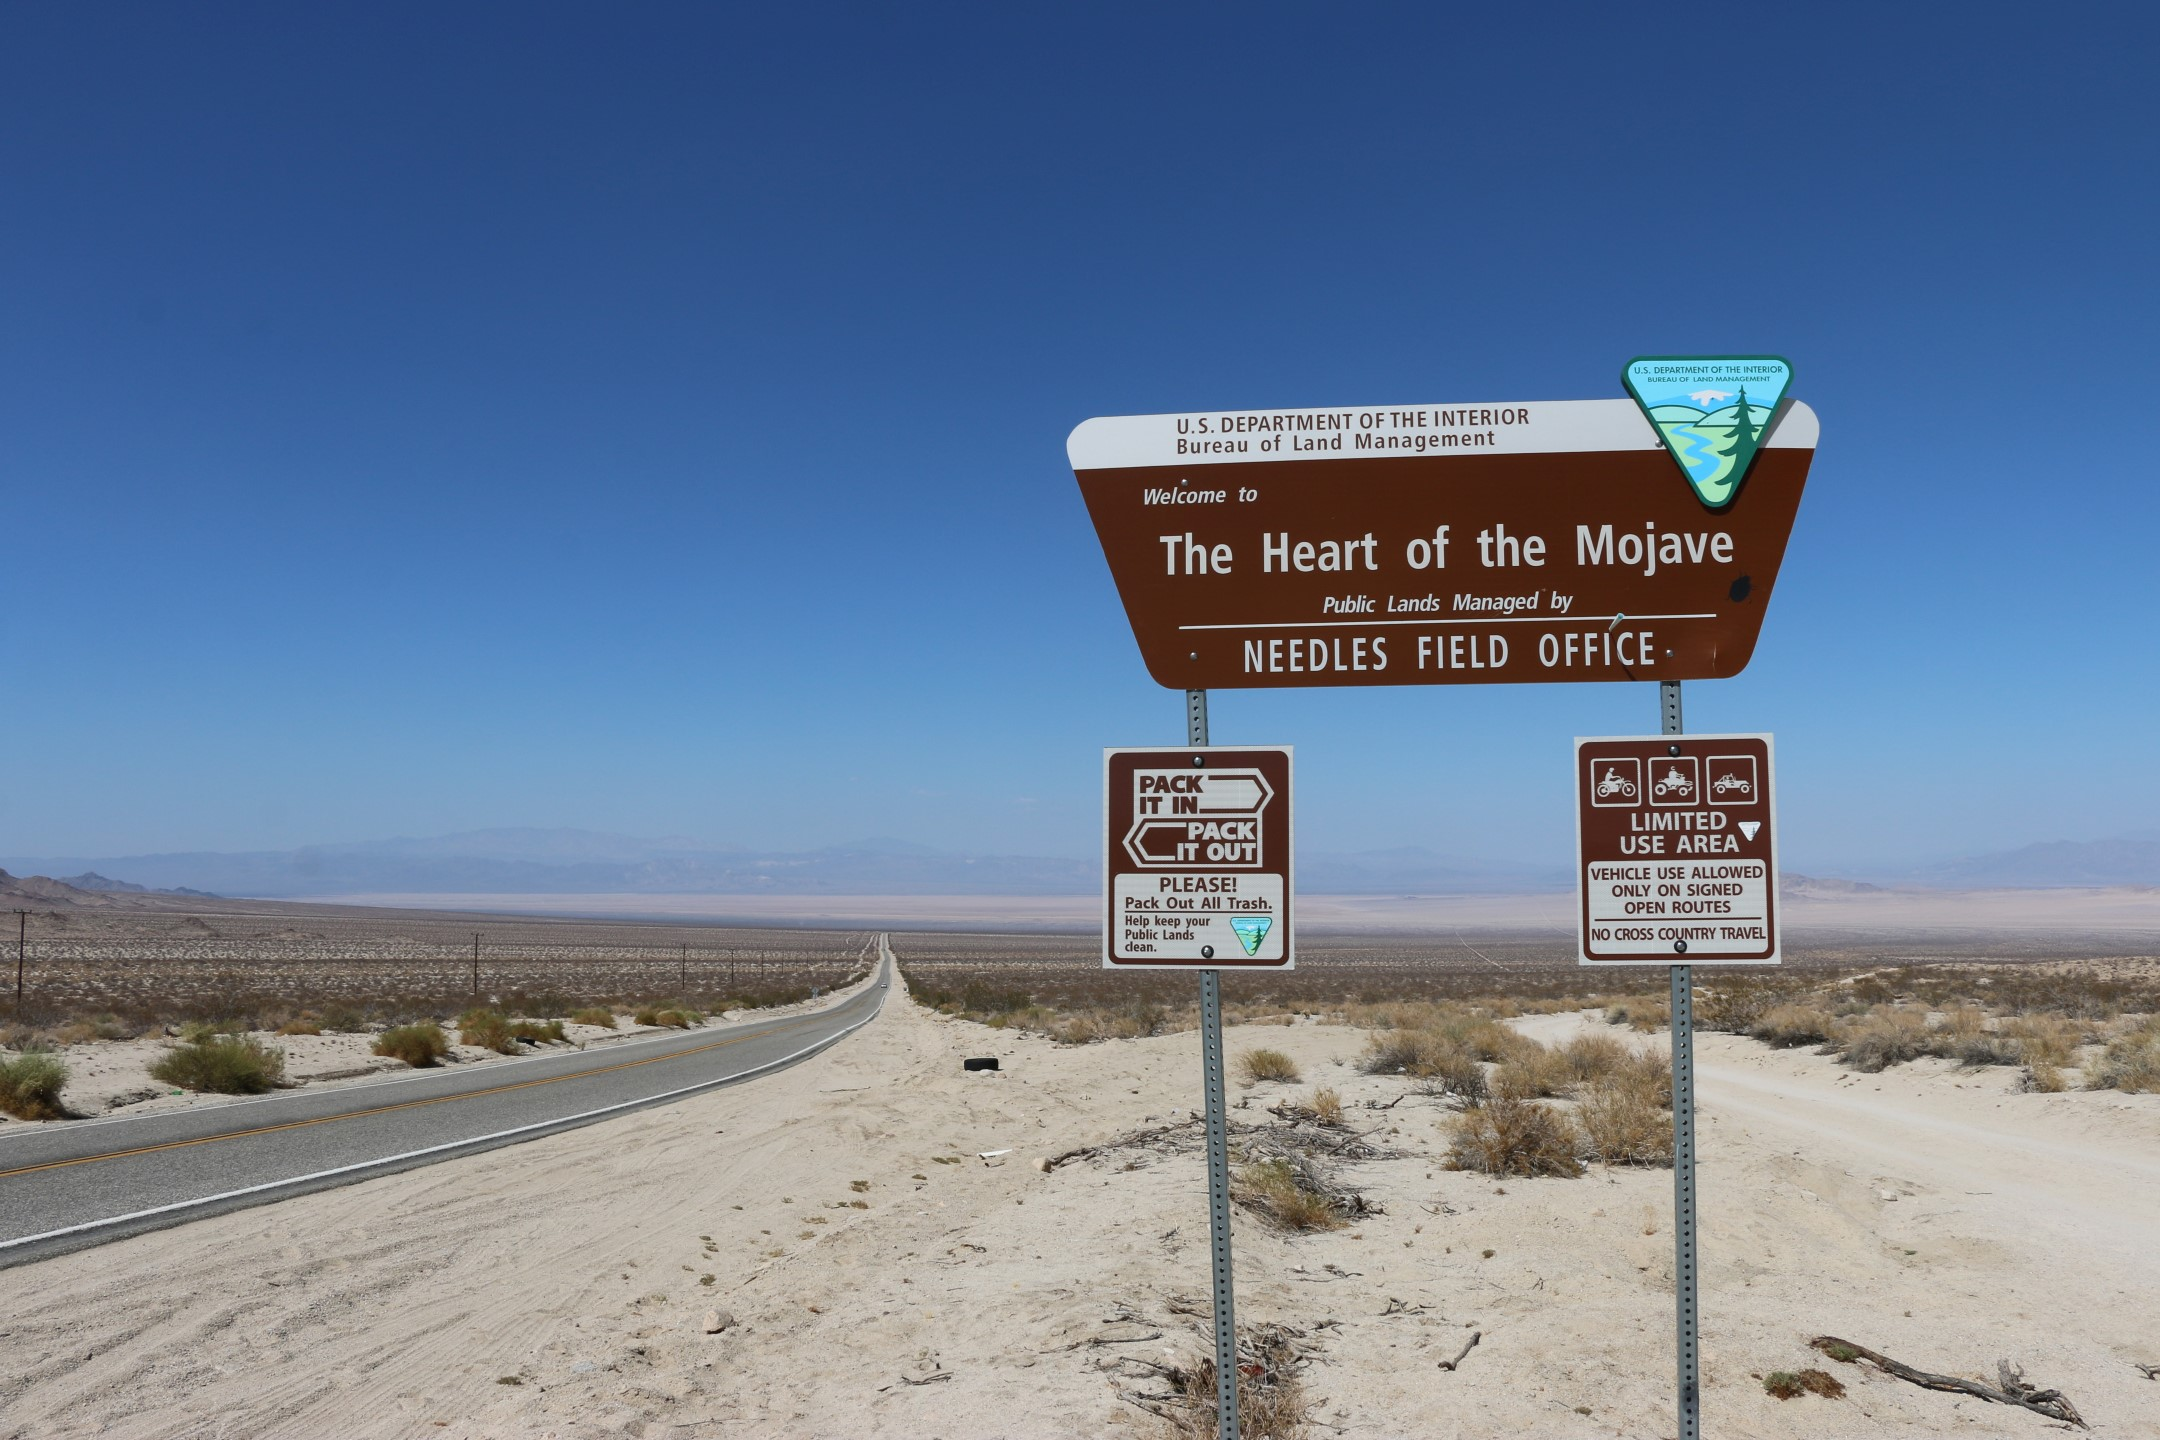 The Heart of the Mojave